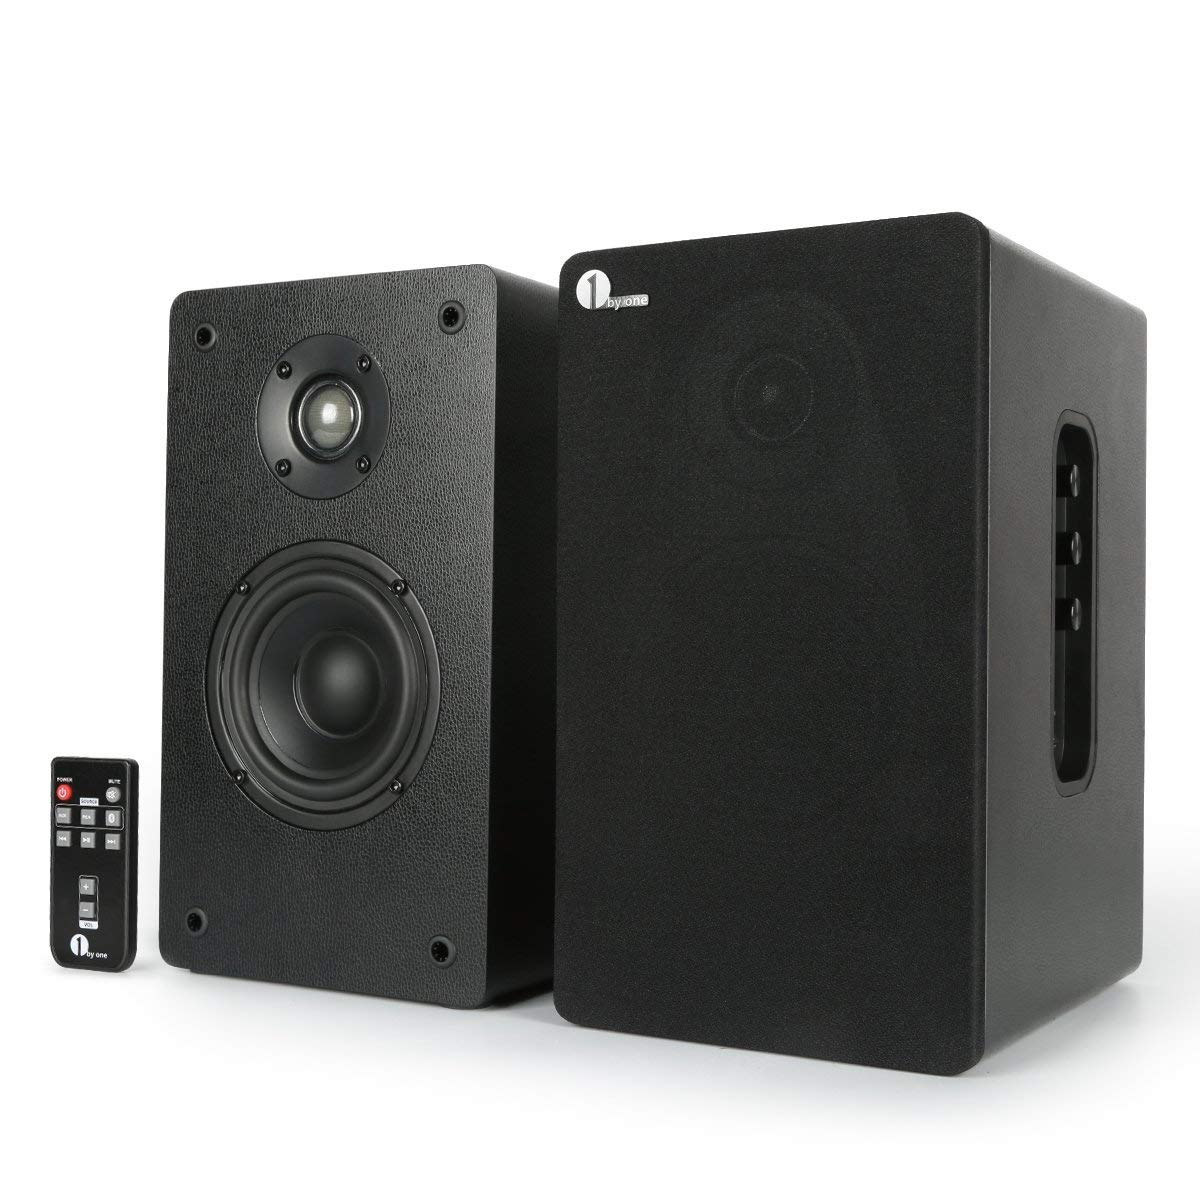 1byone Powered Wireless Classic Bookshelf Speaker with 4 Inch Woofer and 1 Inch Tweeter, 2X30 Wattage RMS, Black by 1 BY ONE